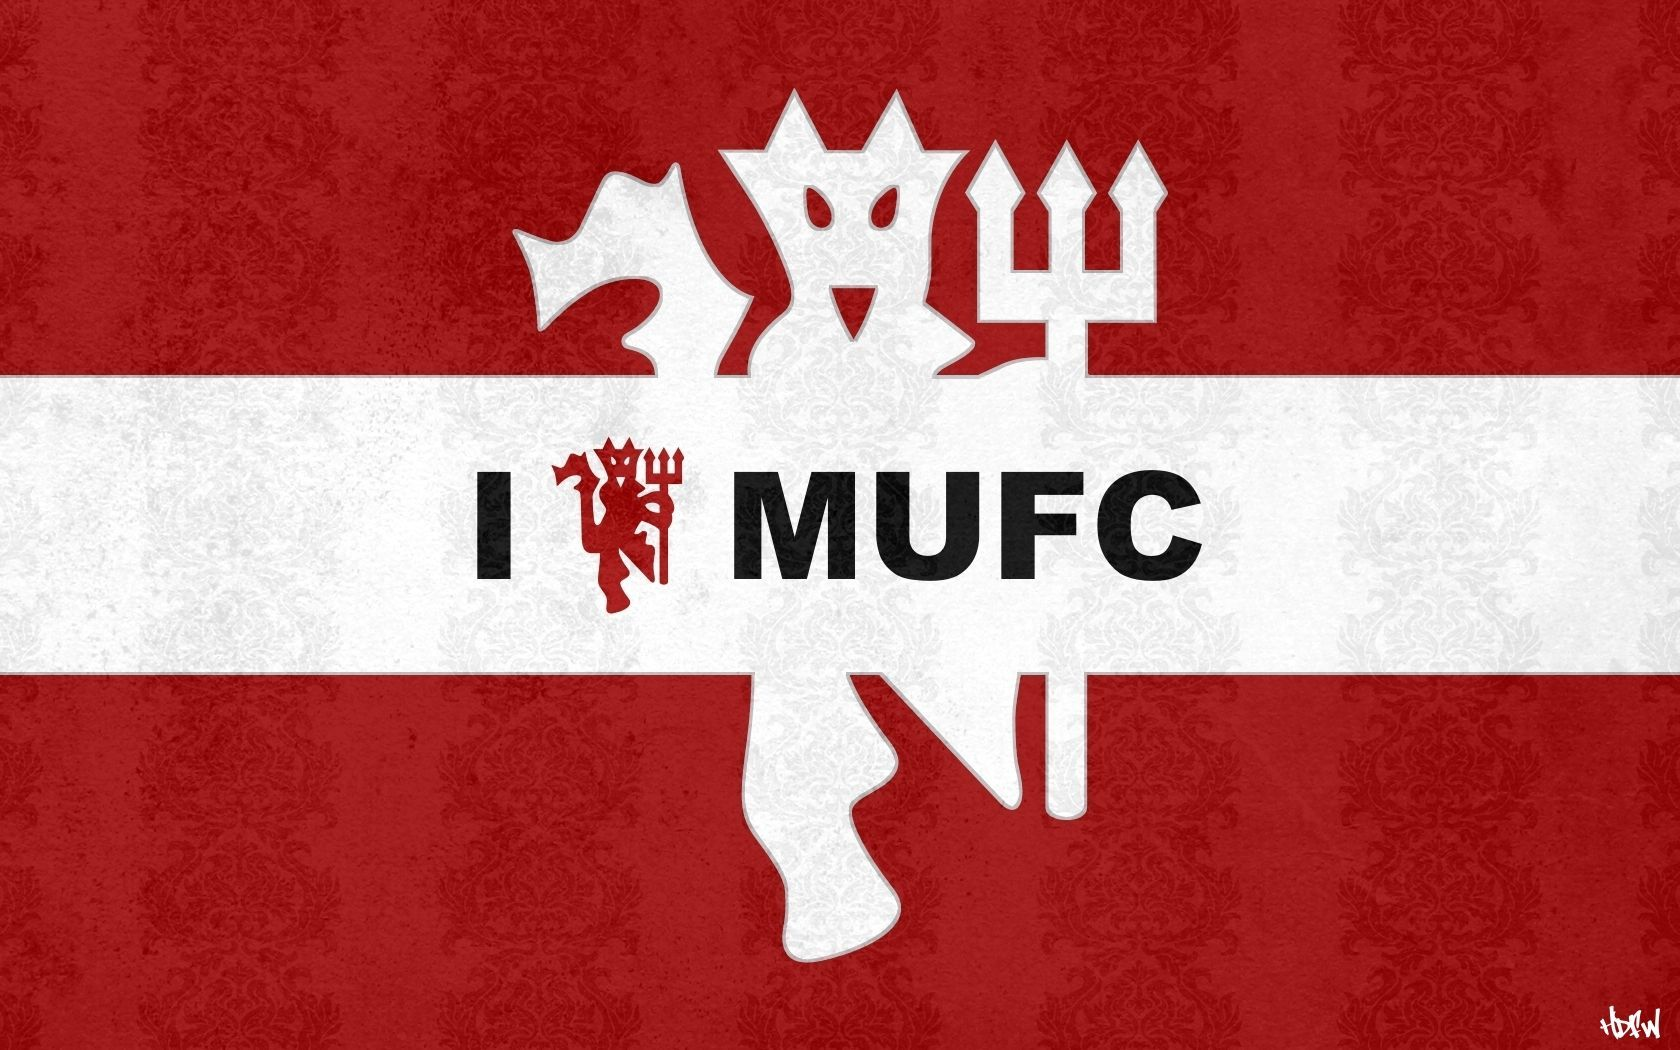 Download Manchester United Wallpaper Ipad